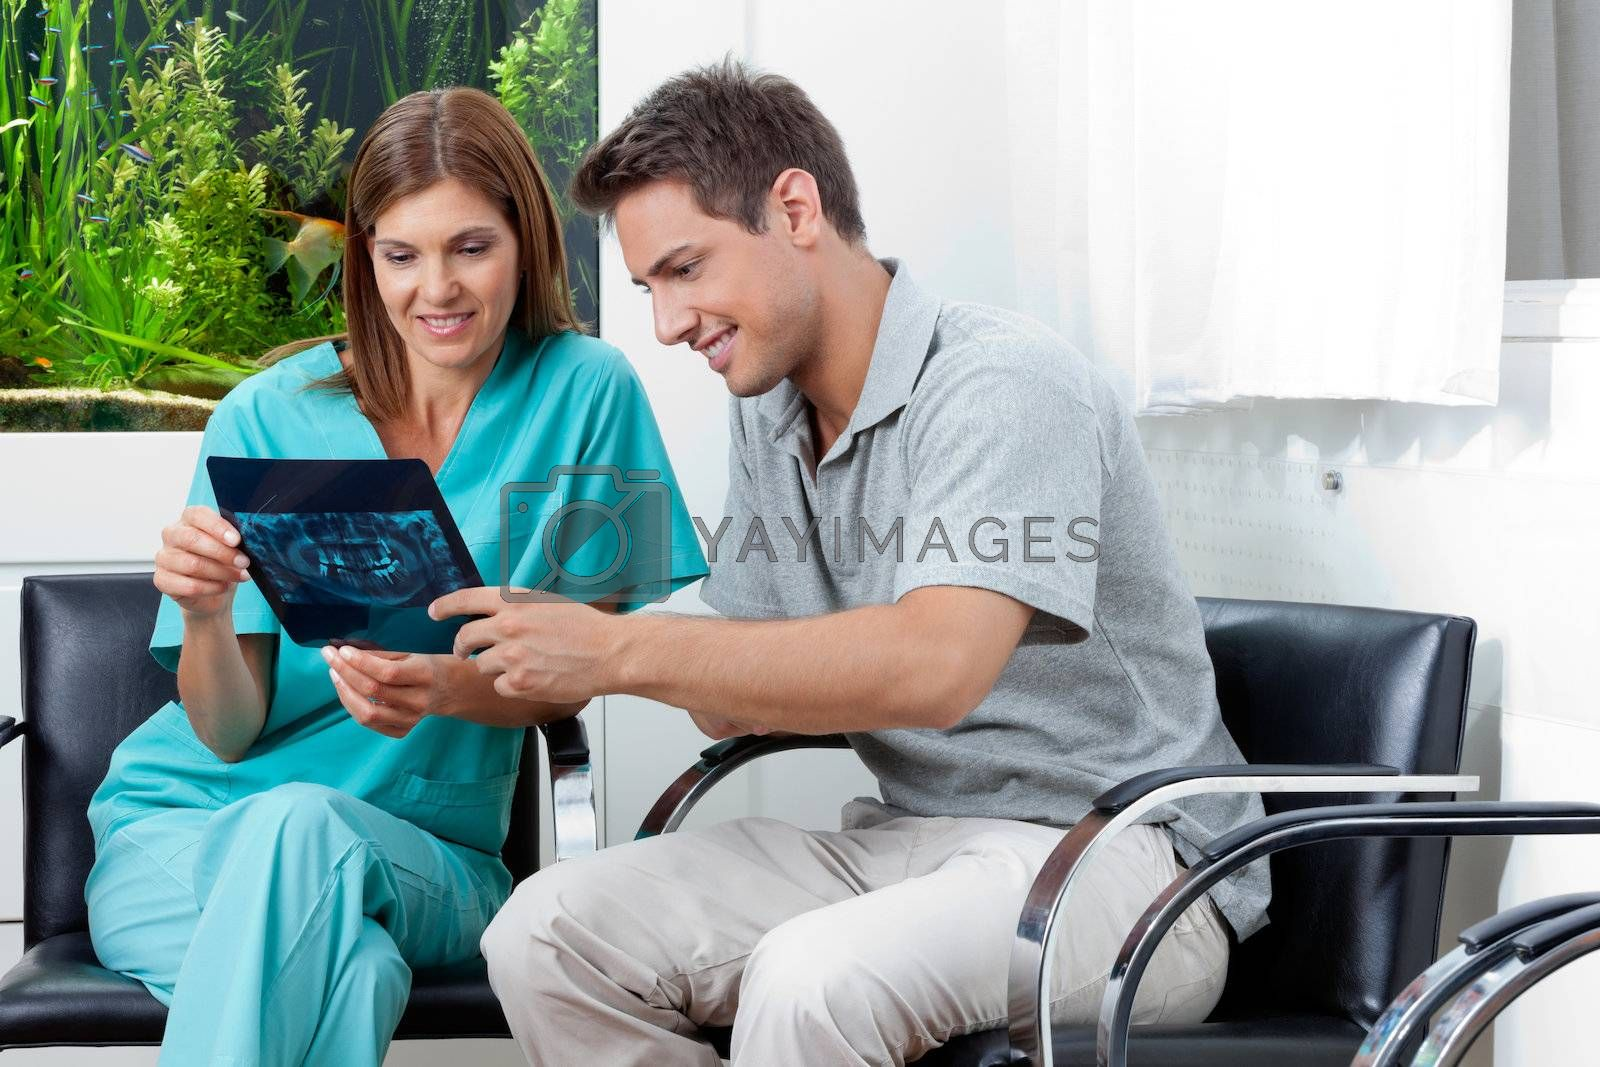 Female dentist showing dental X-ray report to young man in clinic